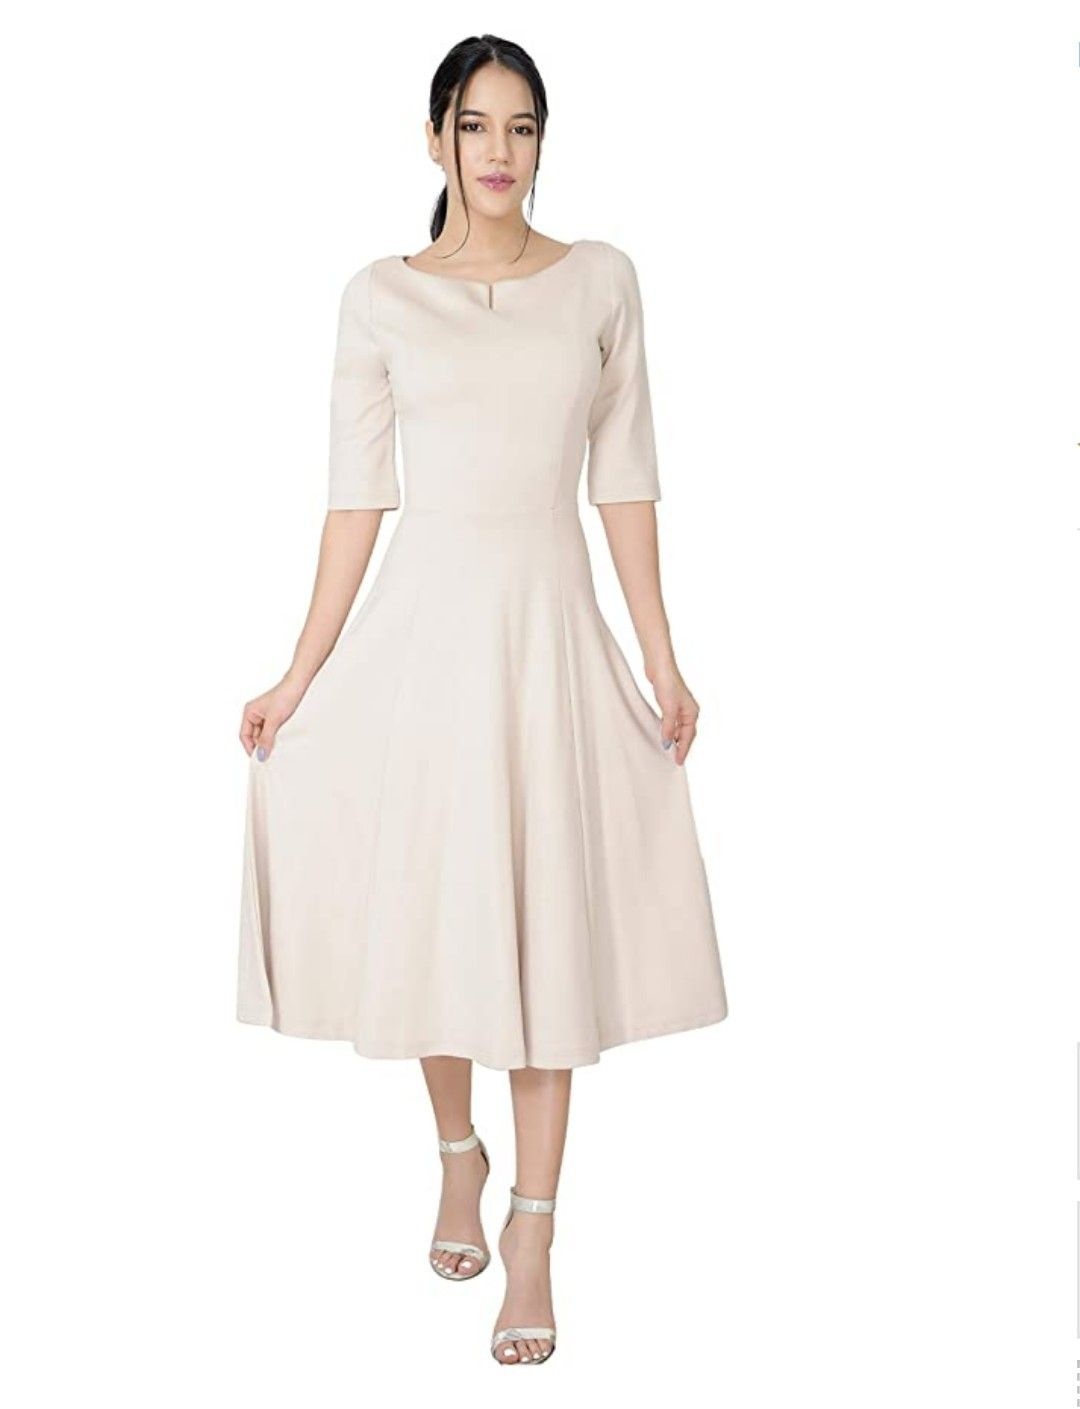 White Fit Flare Tea Midi Dress For Office Business Work Women S Casual Official Clothing Casual Women Clothes Elegant Fashion [ 1409 x 1080 Pixel ]